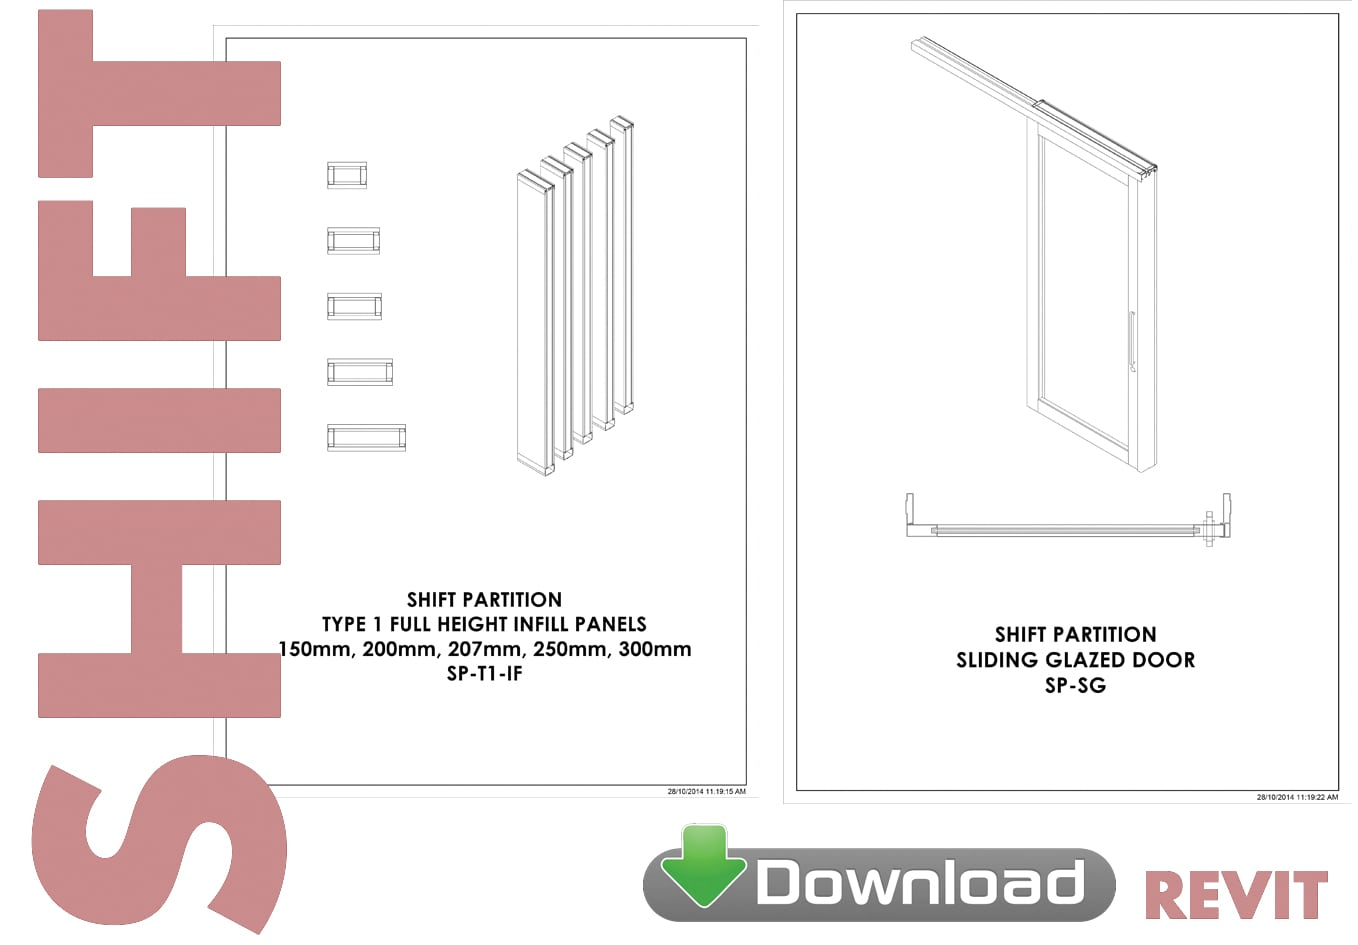 Shift Partition System Revit download - Formula Interiors